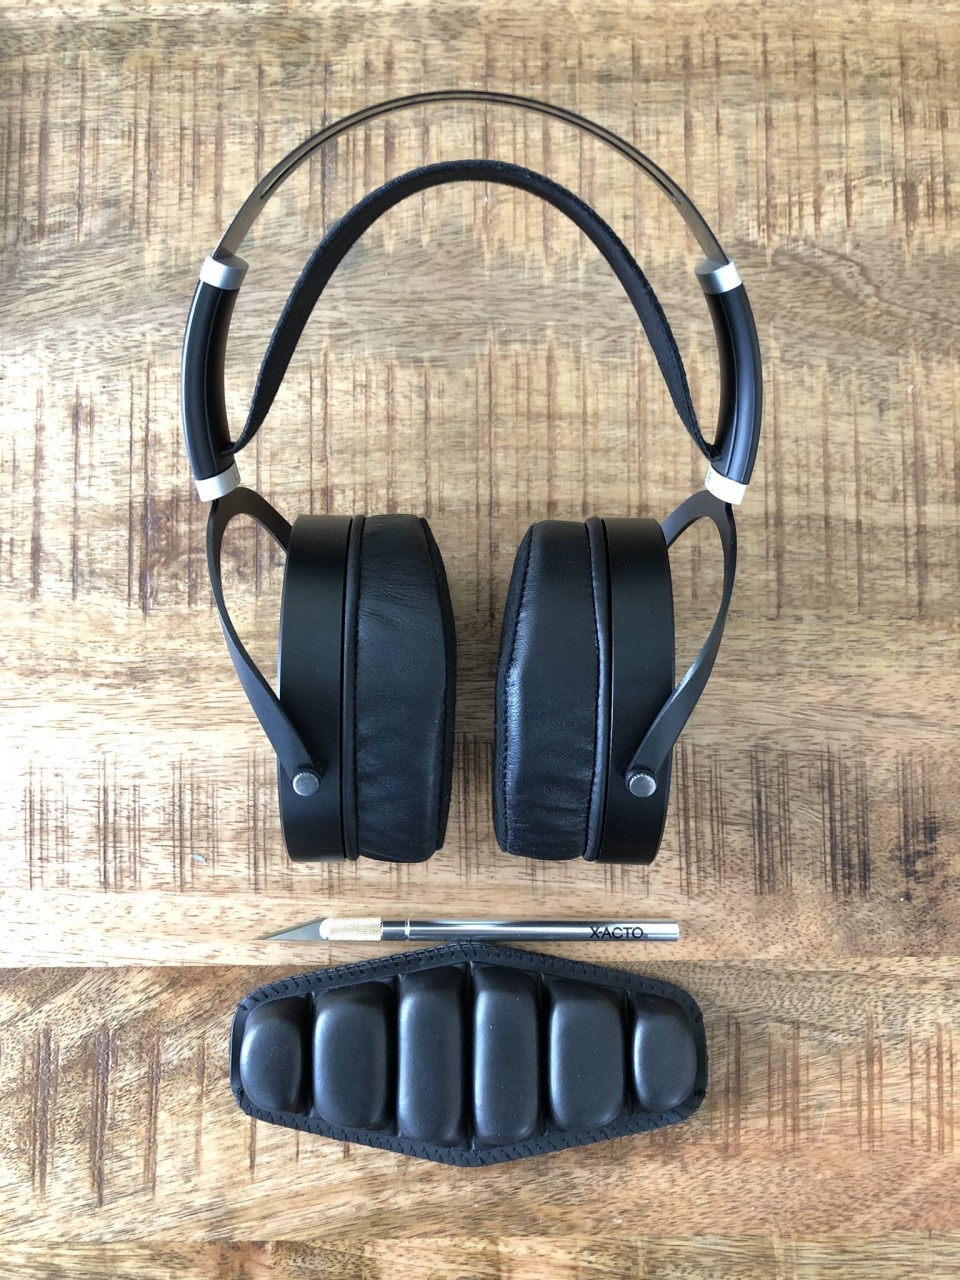 The headpad used is designed for aviation headsets which sport a similar spring steel upper band...